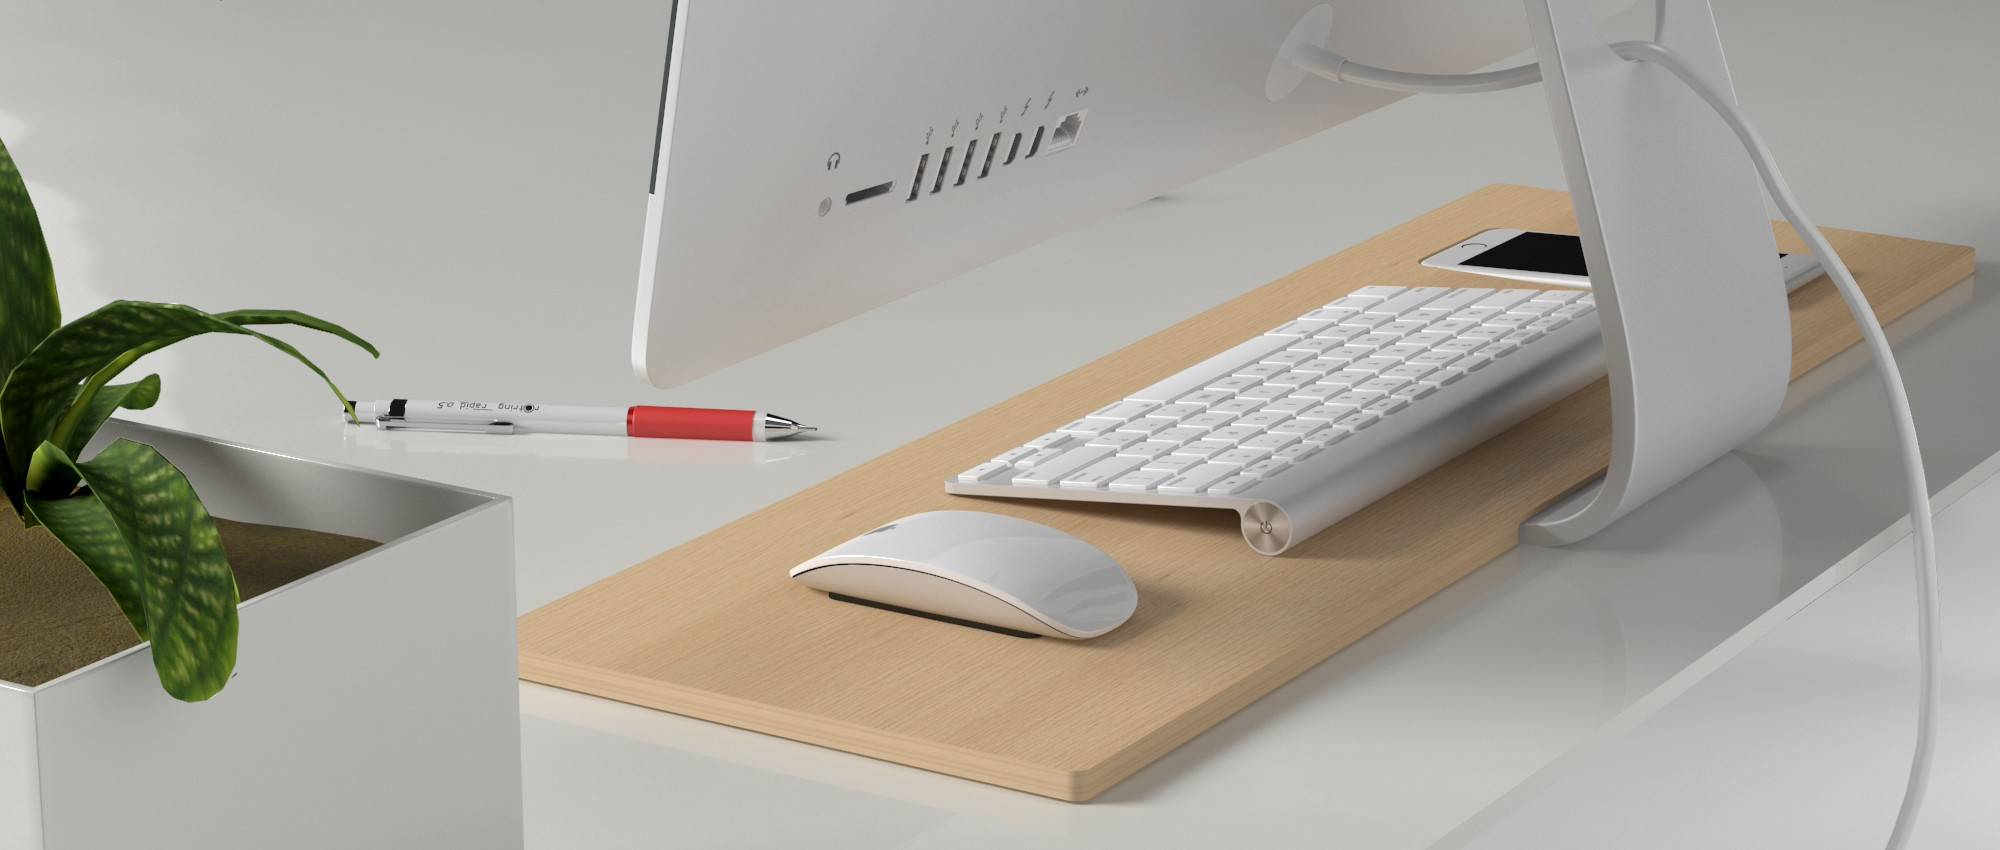 Tamm iPhone 6 Plus Dock & iMac Desk Organizer